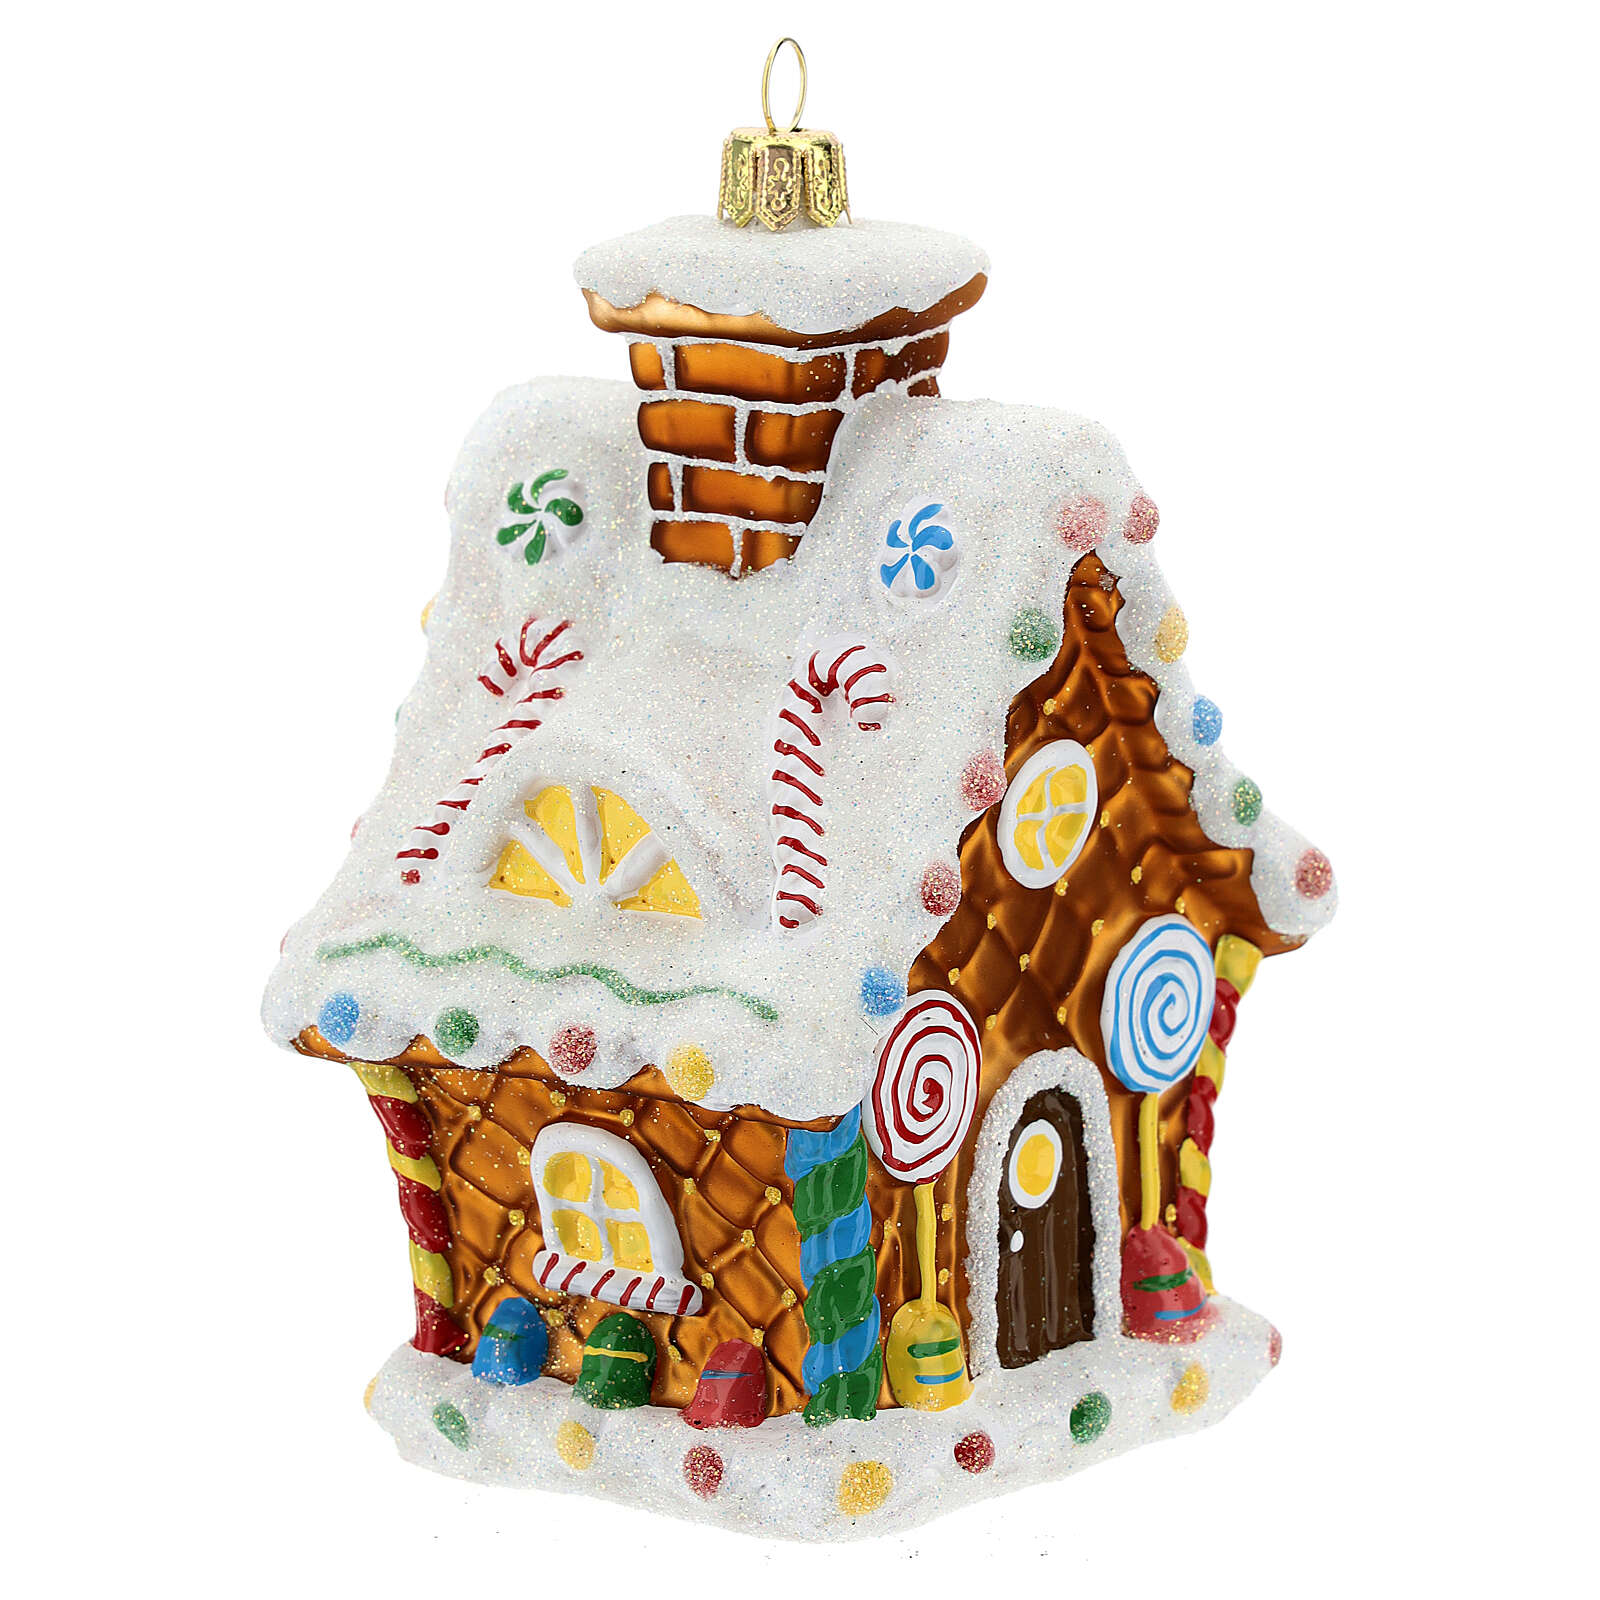 Blown glass Christmas ornament, gingerbread house 4